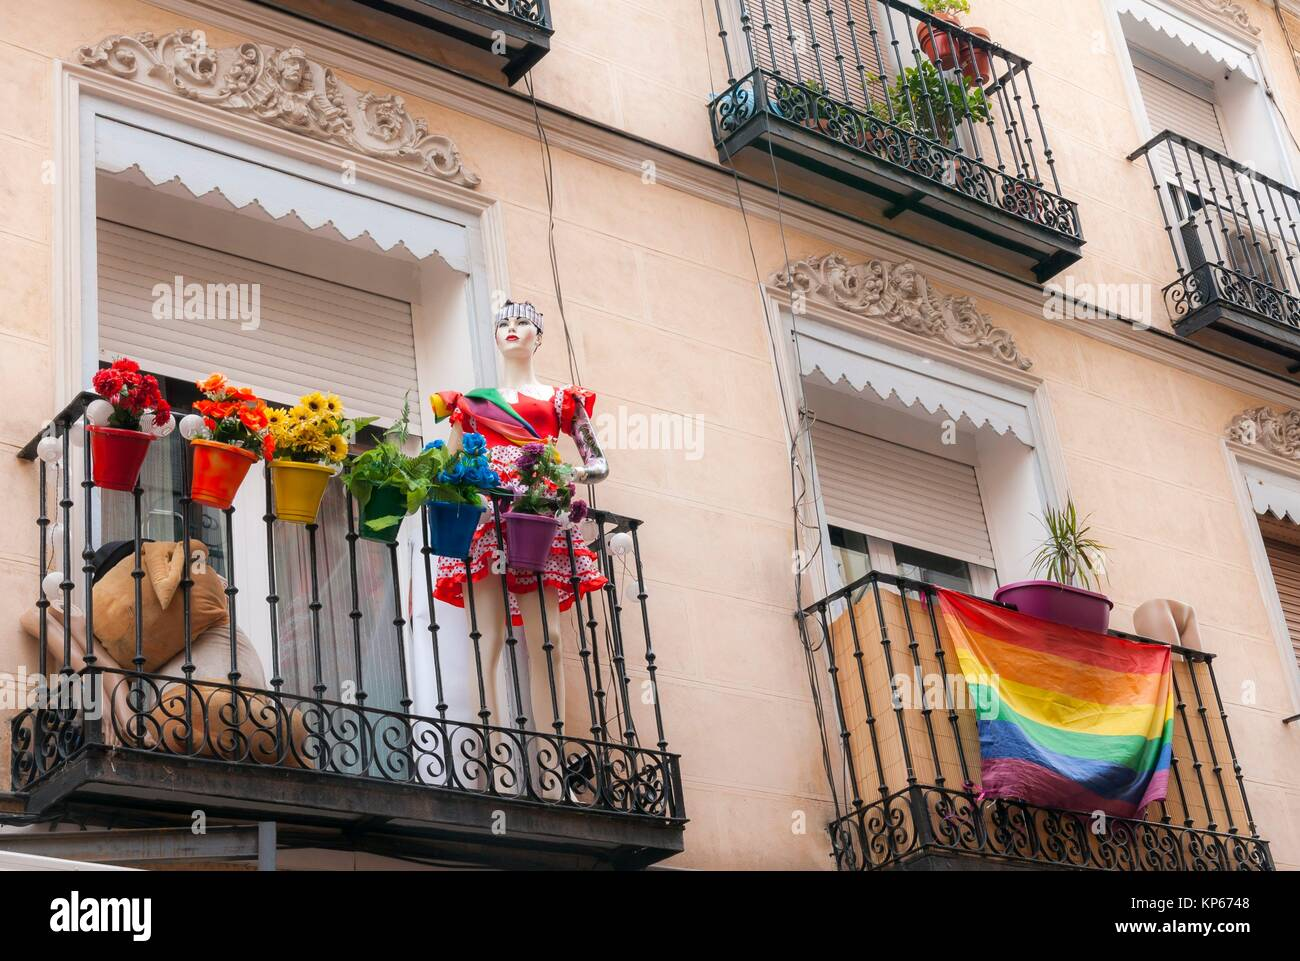 Flags in balconies during gay pride festival. Chueca district. Madrid. Spain. - Stock Image